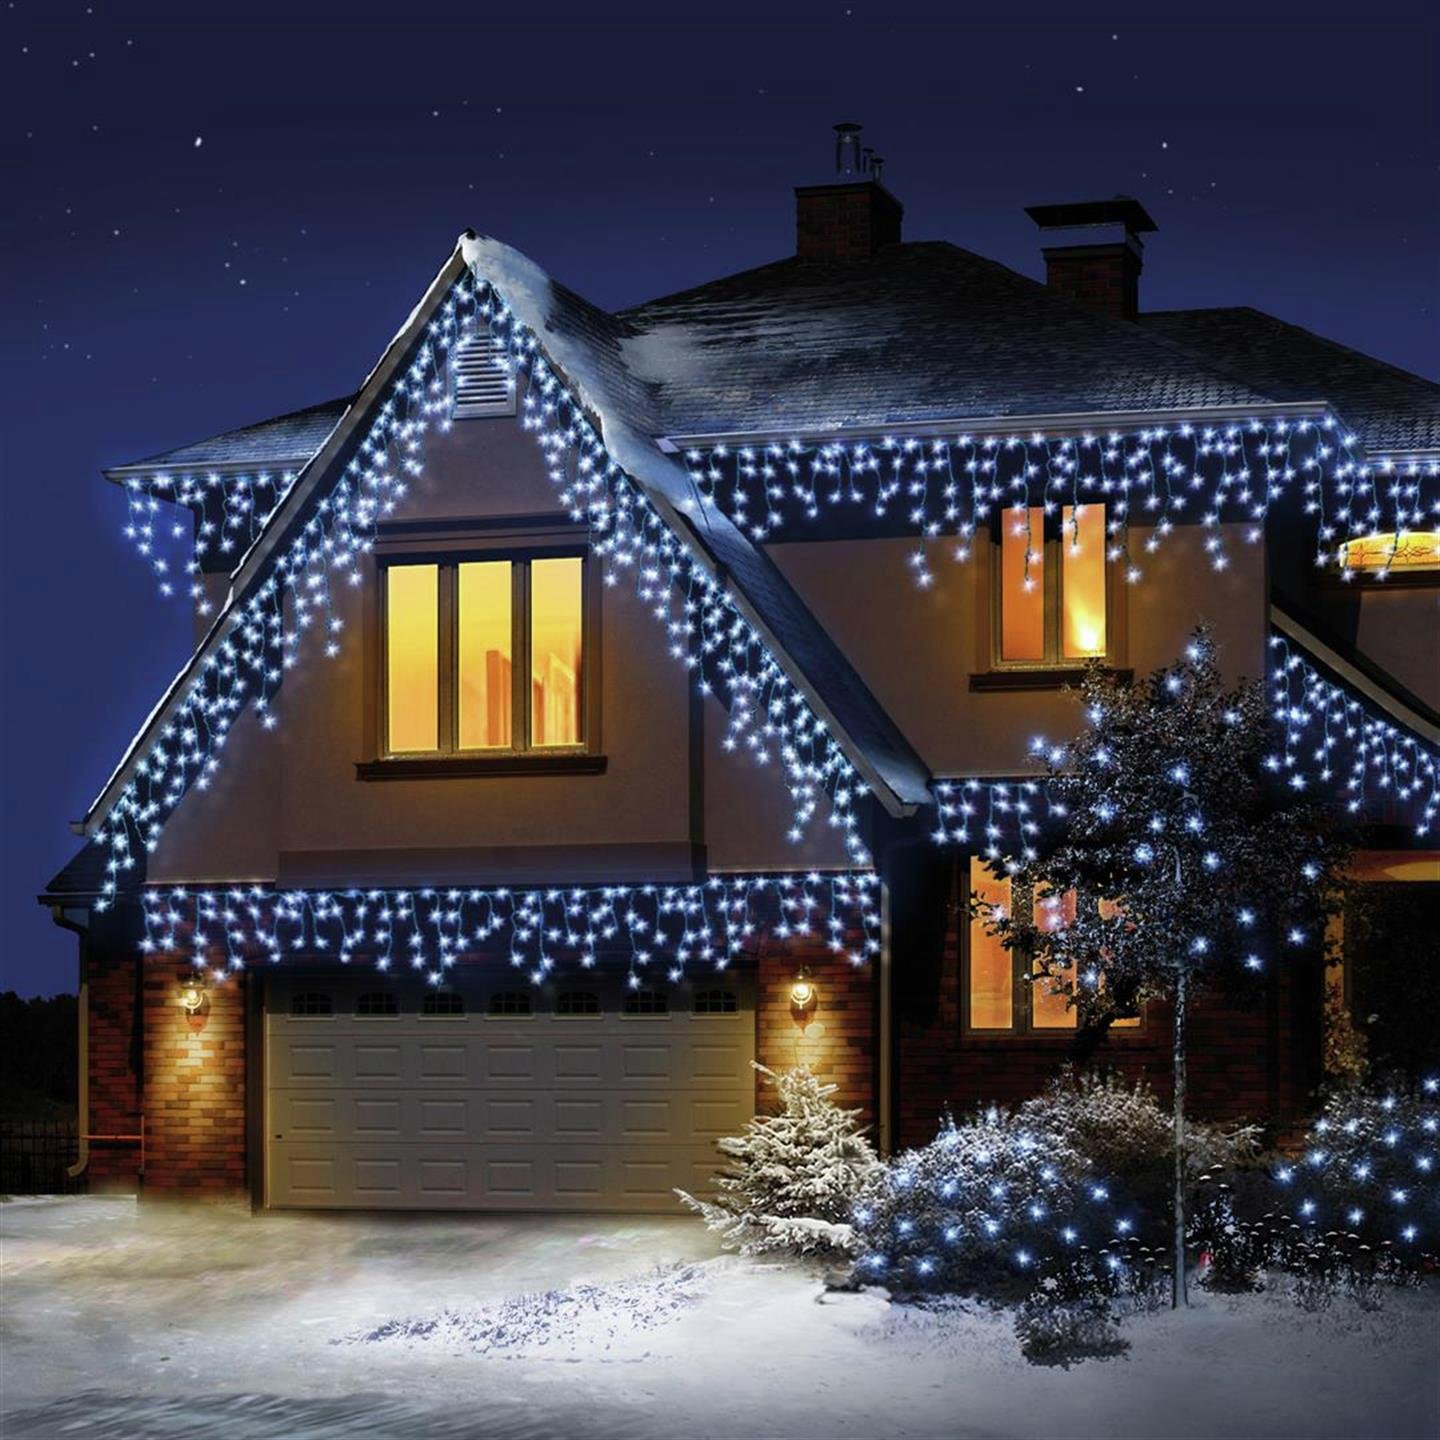 480 Led Snowing Icicle Christmas Lights White 5543397 Argos